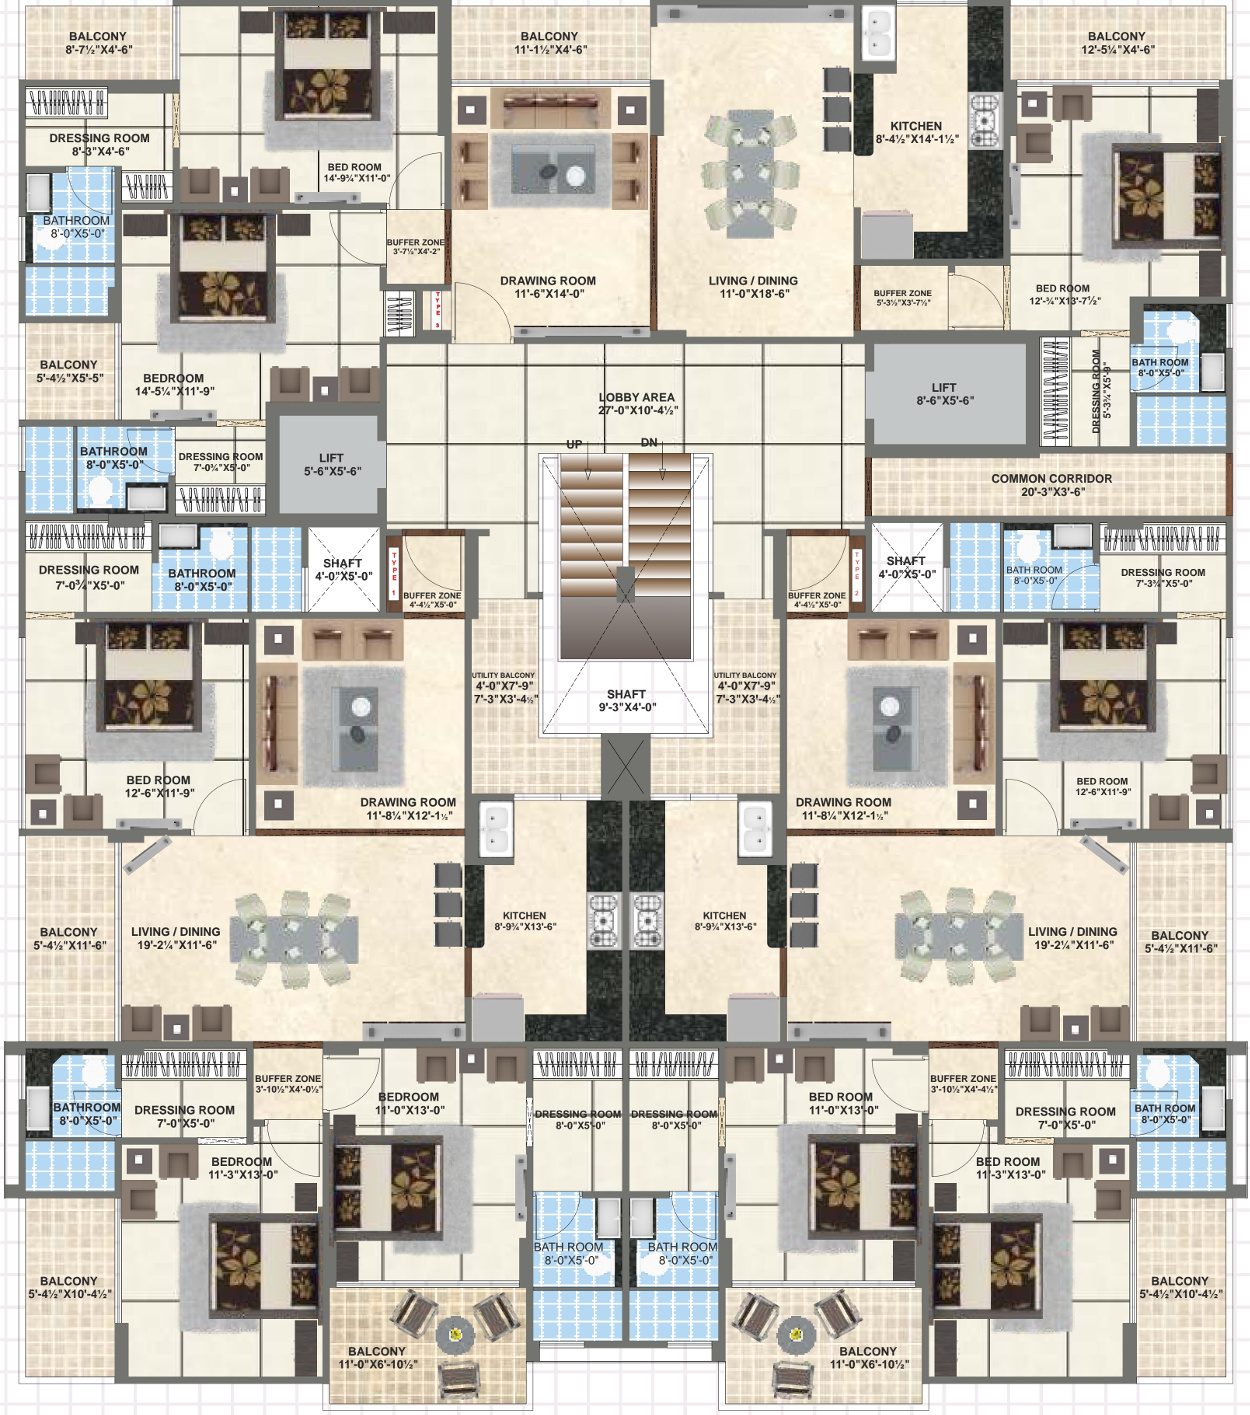 Kings Landing Apartments: 2050 Sq Ft 3 BHK 3T Apartment For Sale In DND Buildhome